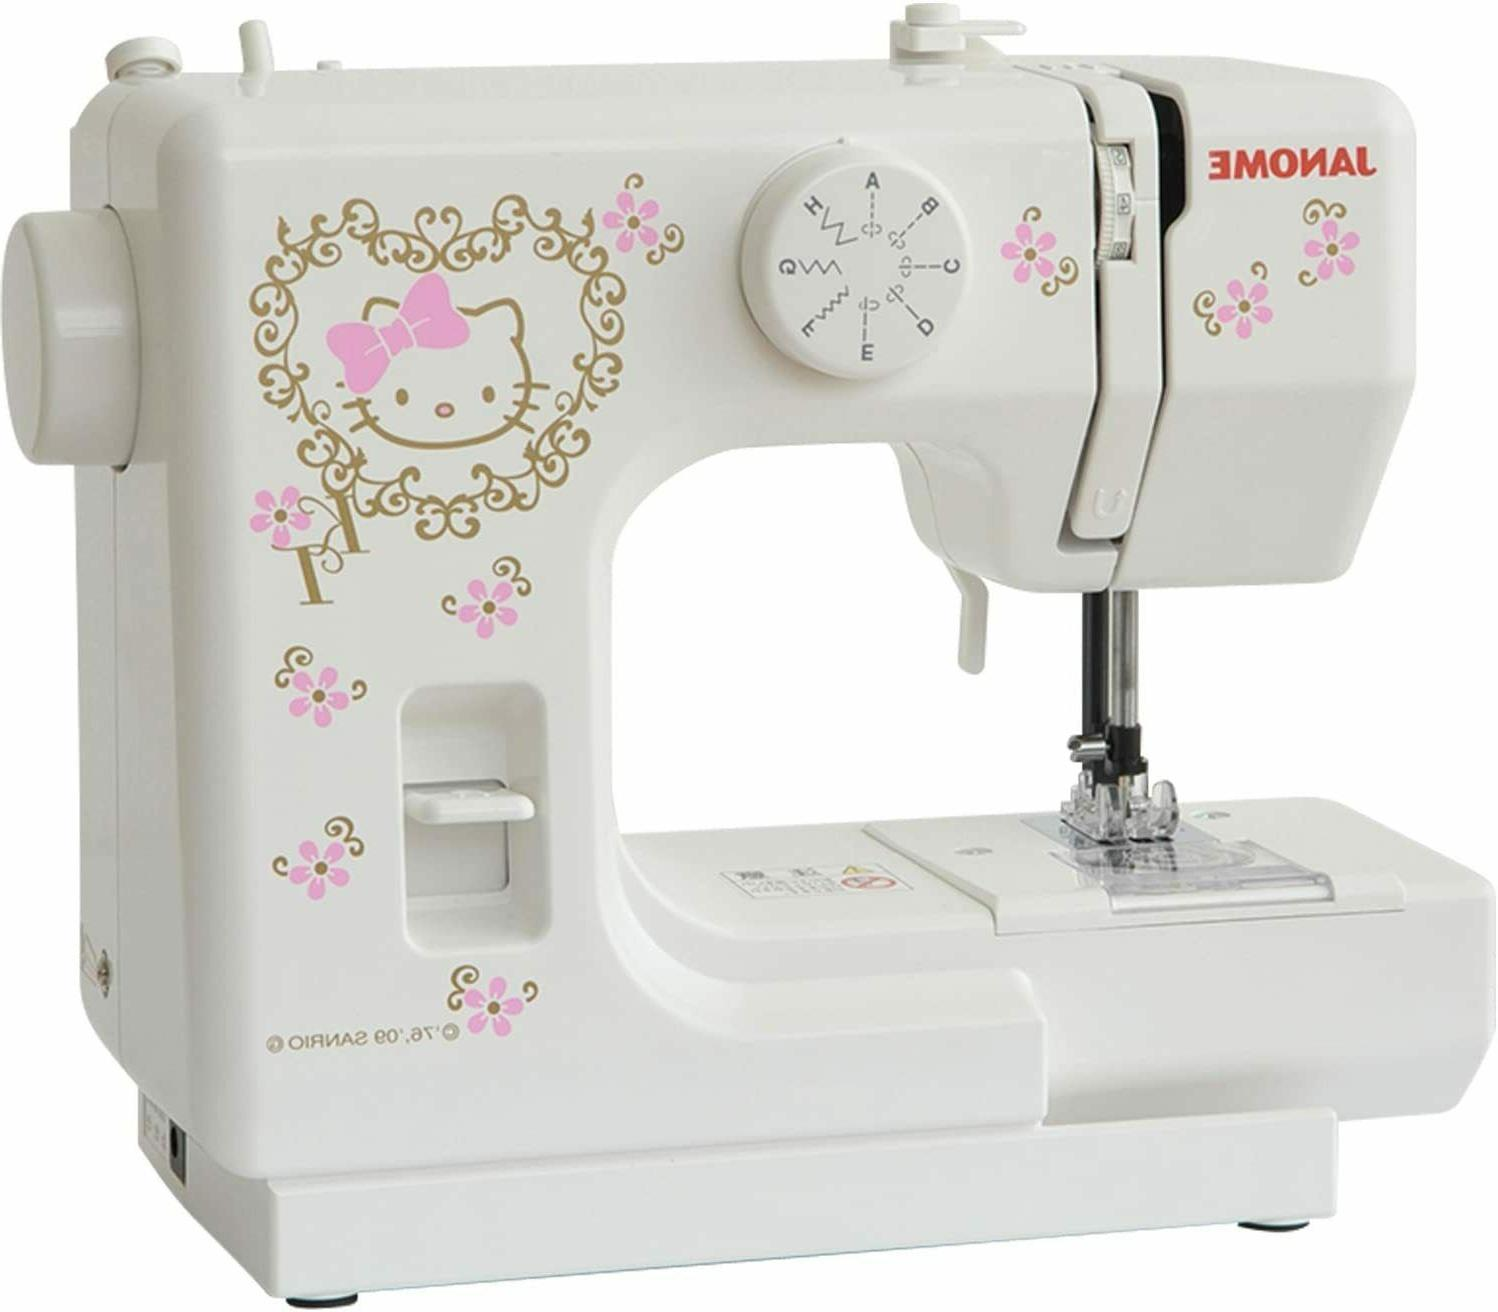 JANOME Hello Kitty Electric Sewing Machine Perfect KT-35 Jap